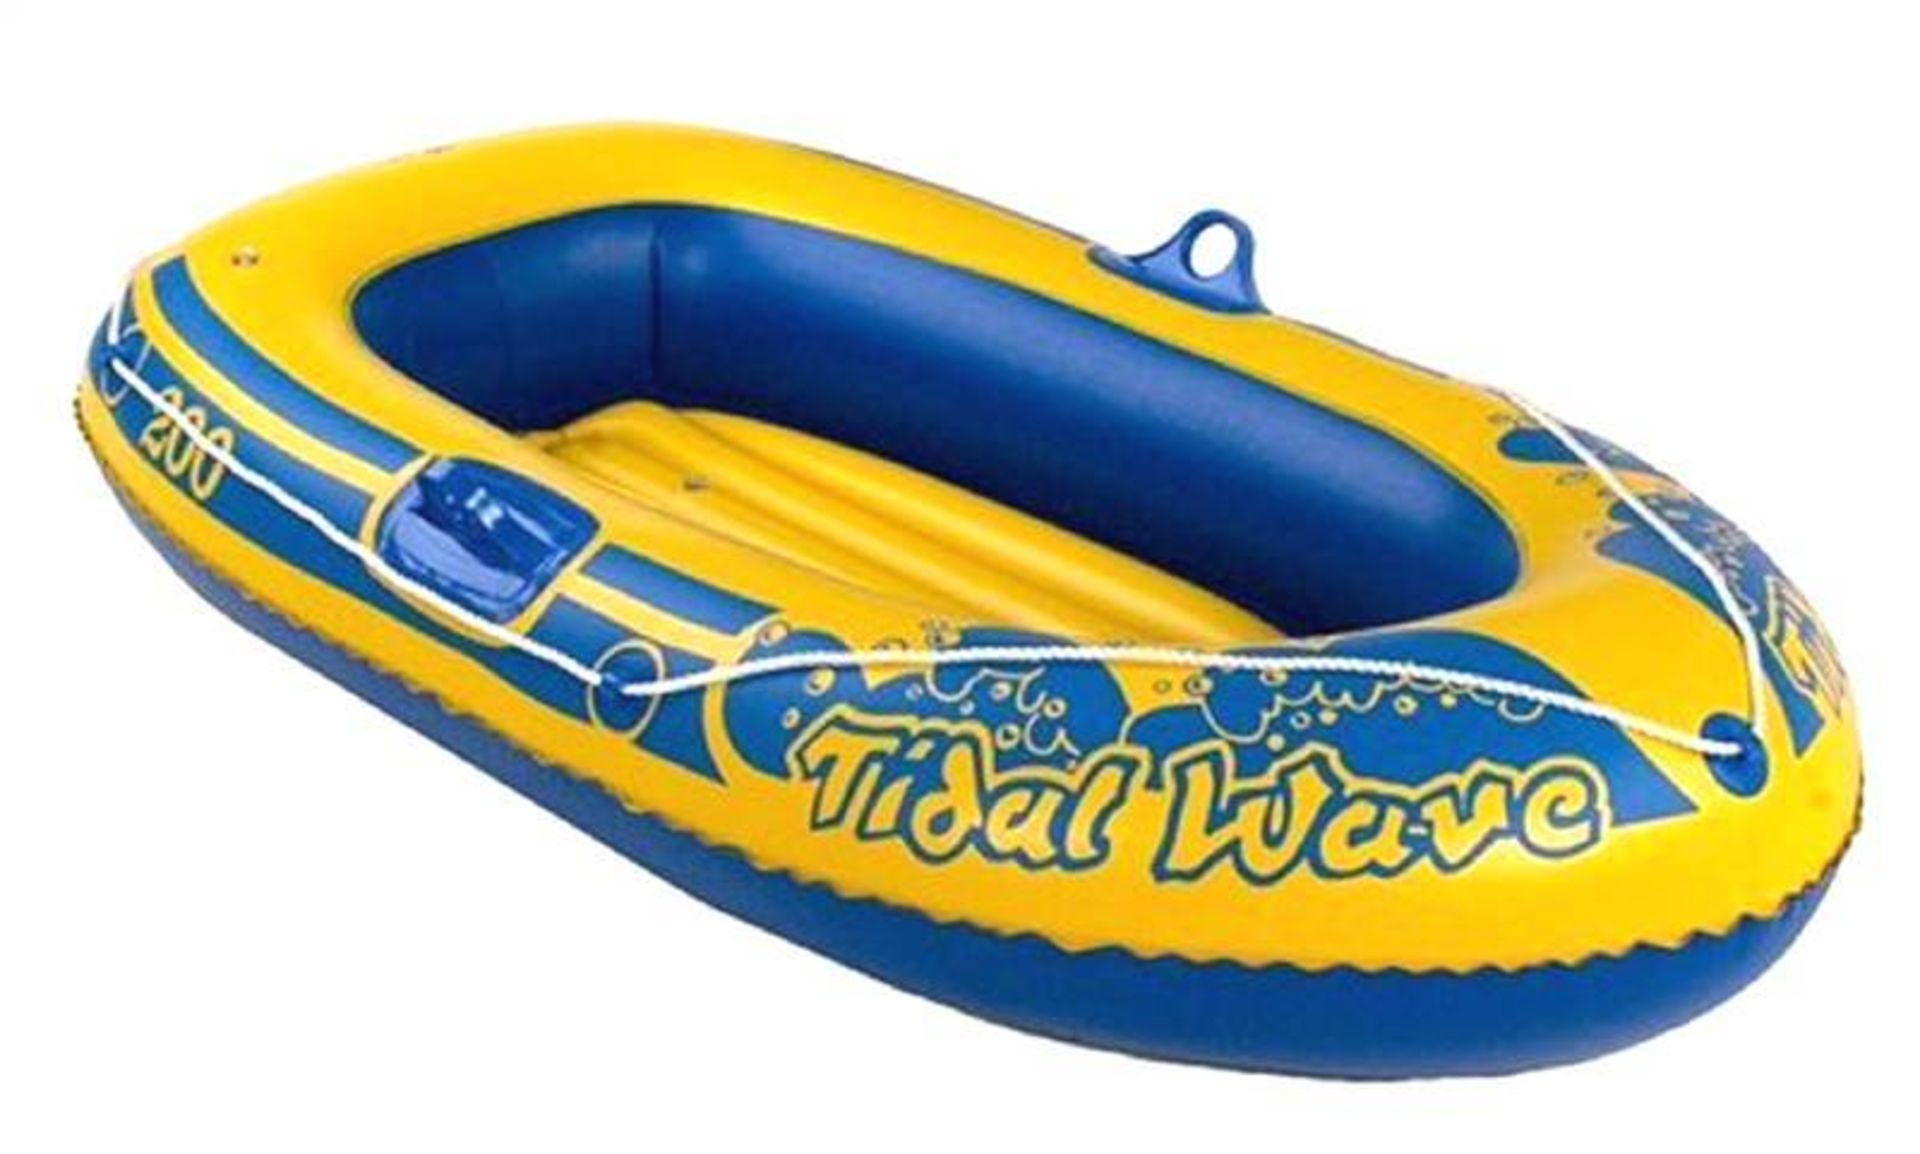 + VAT Brand New 89 Inch By 51 Inch Inflatable Dinghy - Repair Patch Included, Heavy Guage PVC And 4